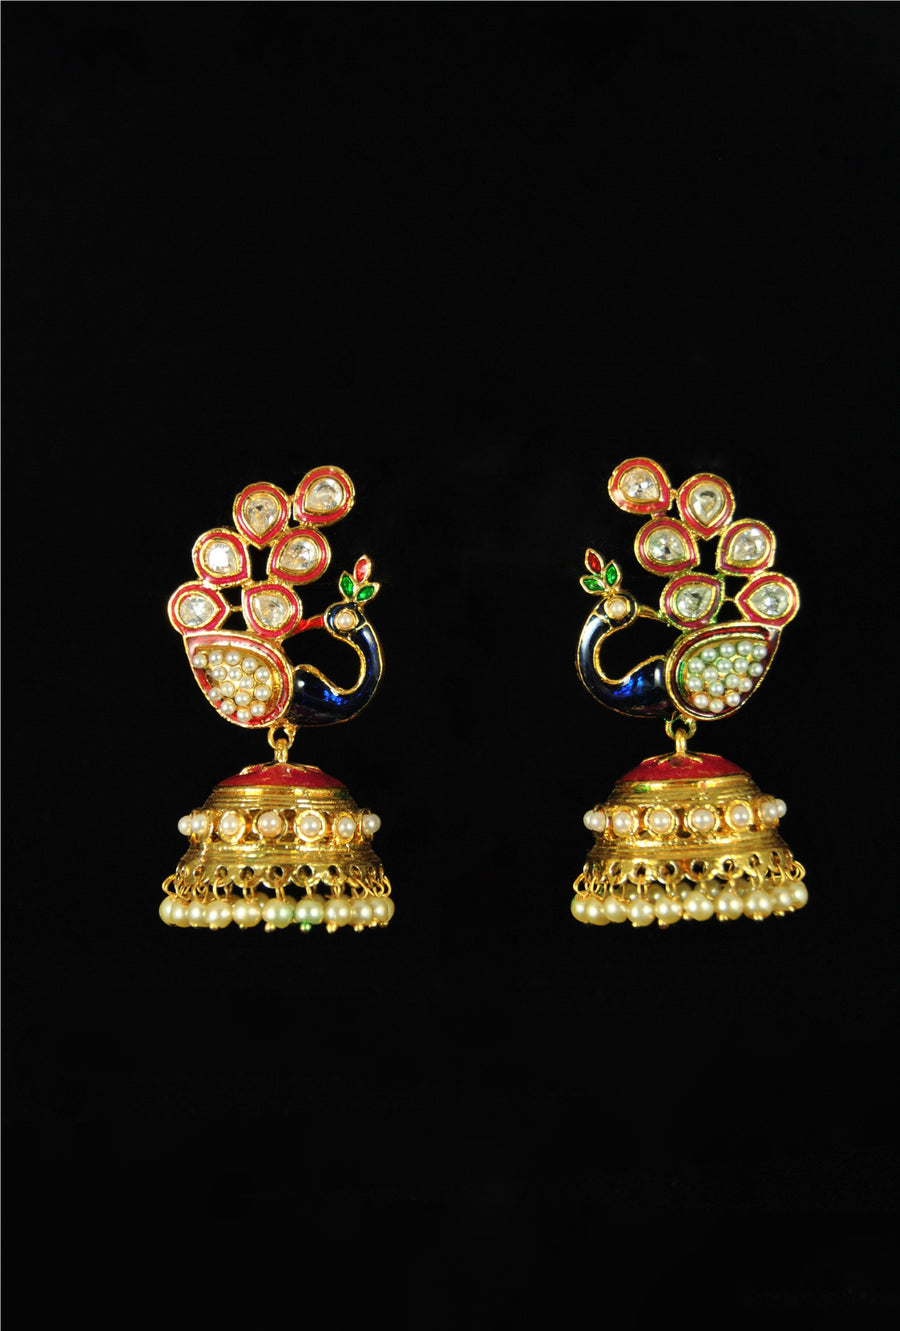 Traditional peacock style earrings with jhumki - Desi Royale